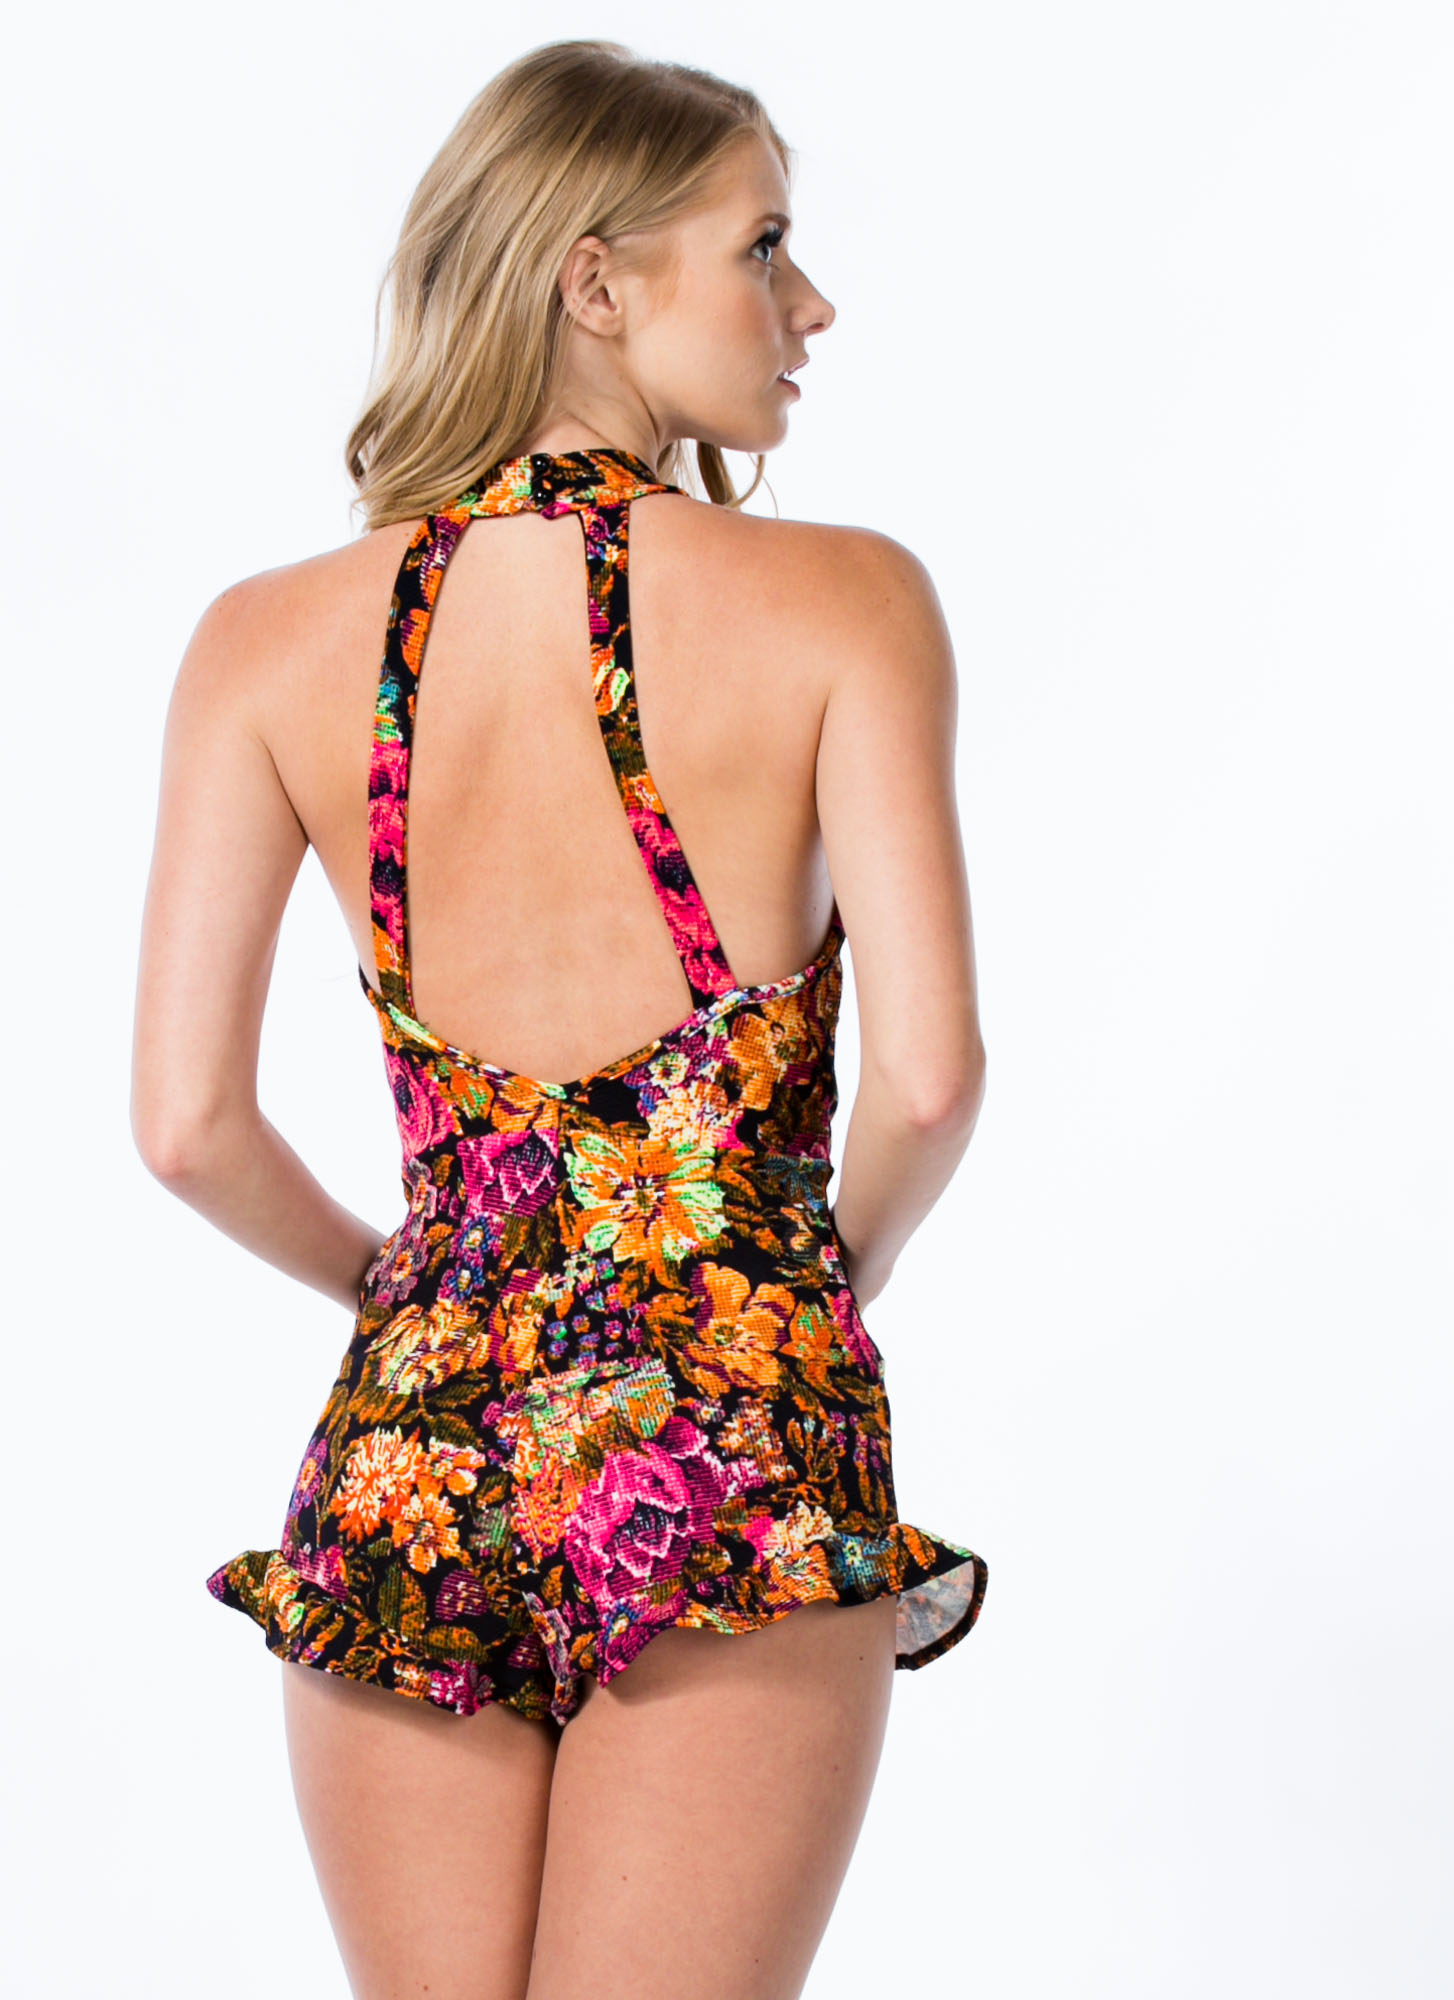 Pixelated Floral Ruffled Romper BLACKPINK